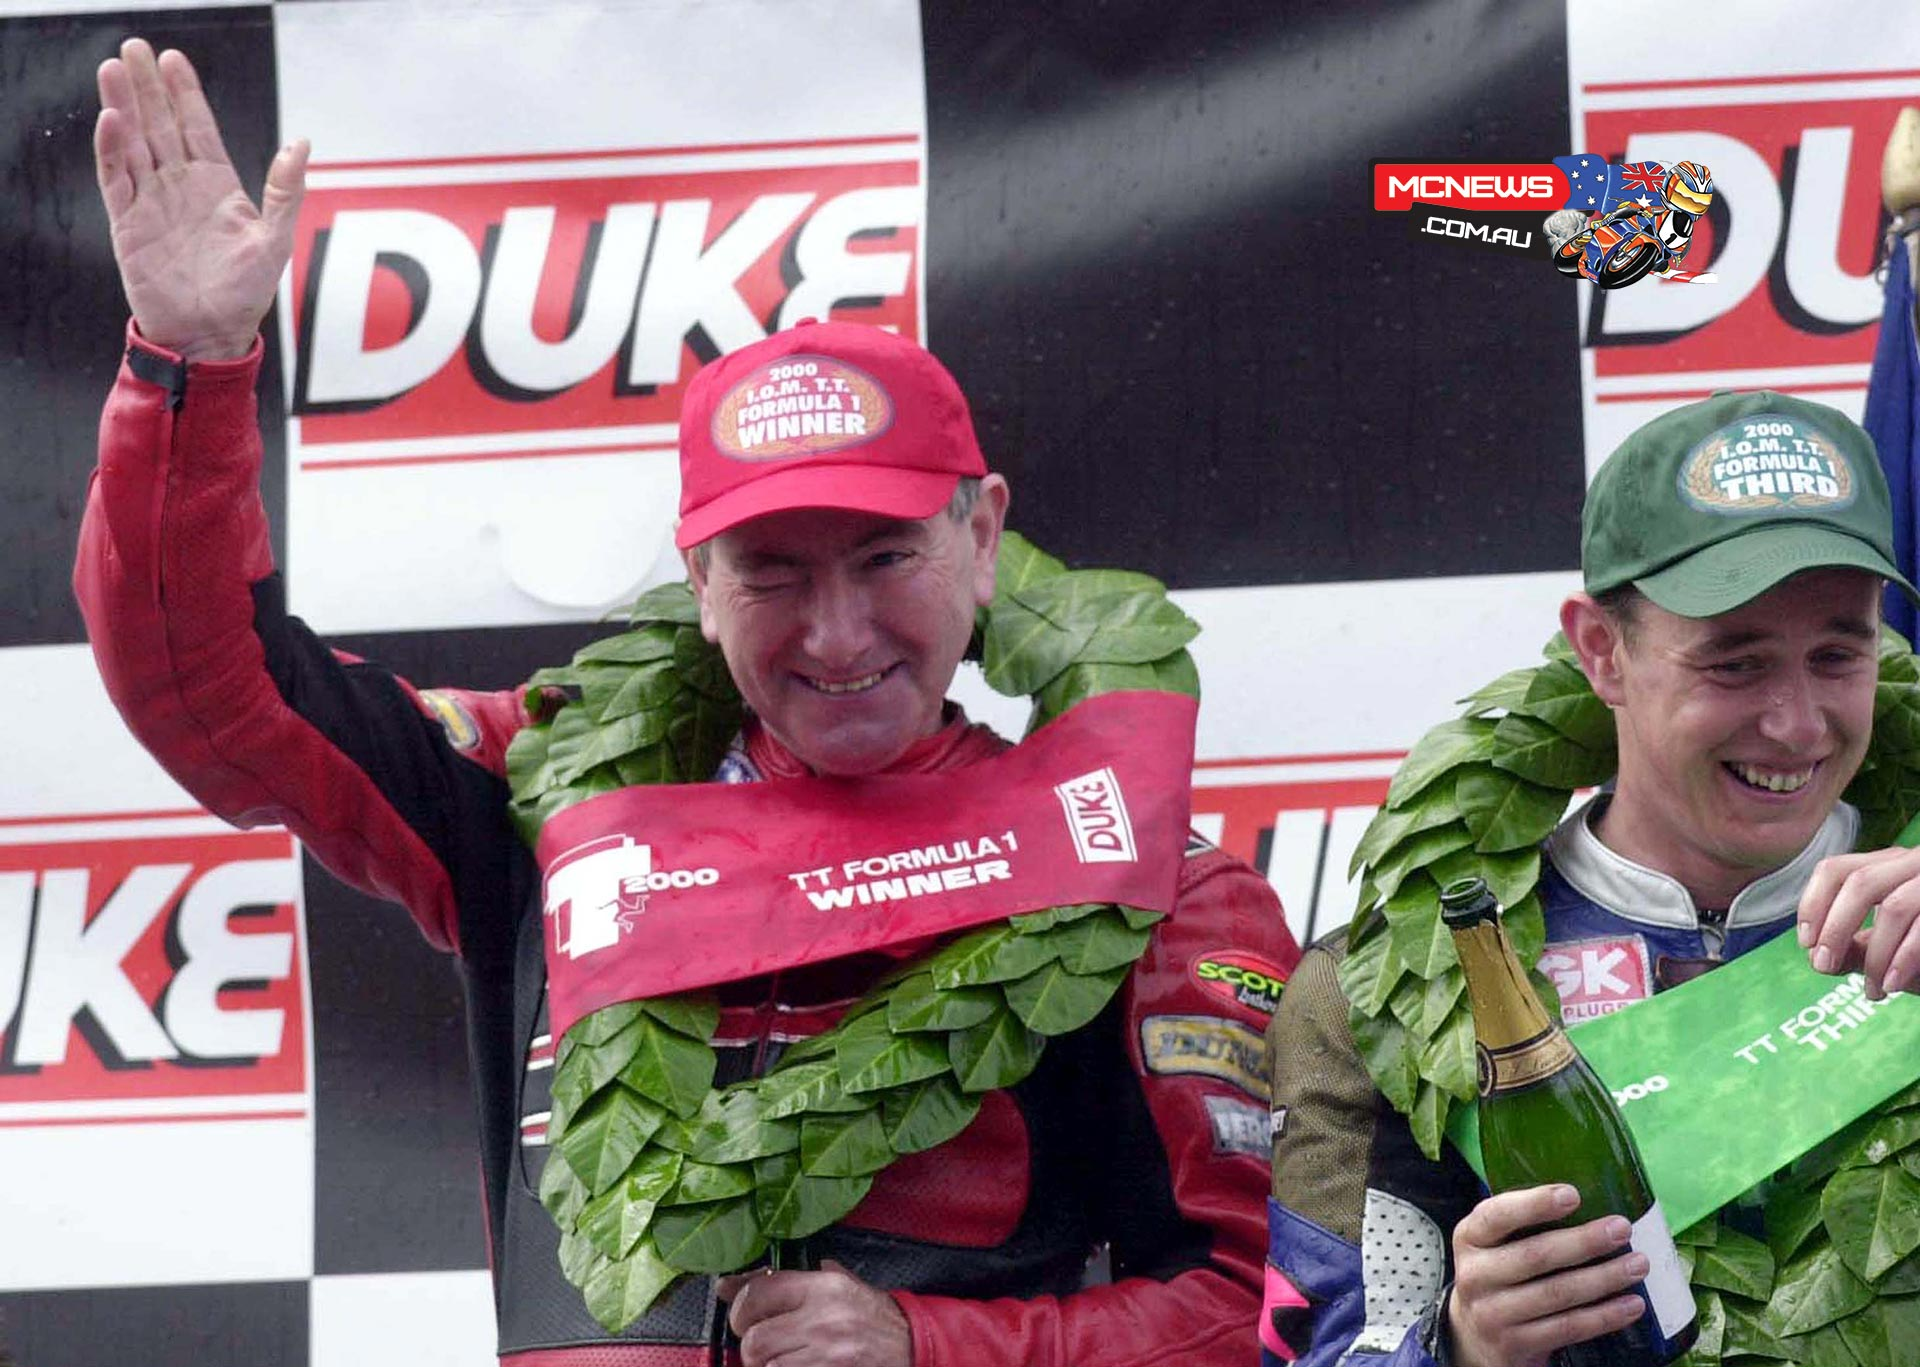 Joey Dunlop alongside John McGuinness